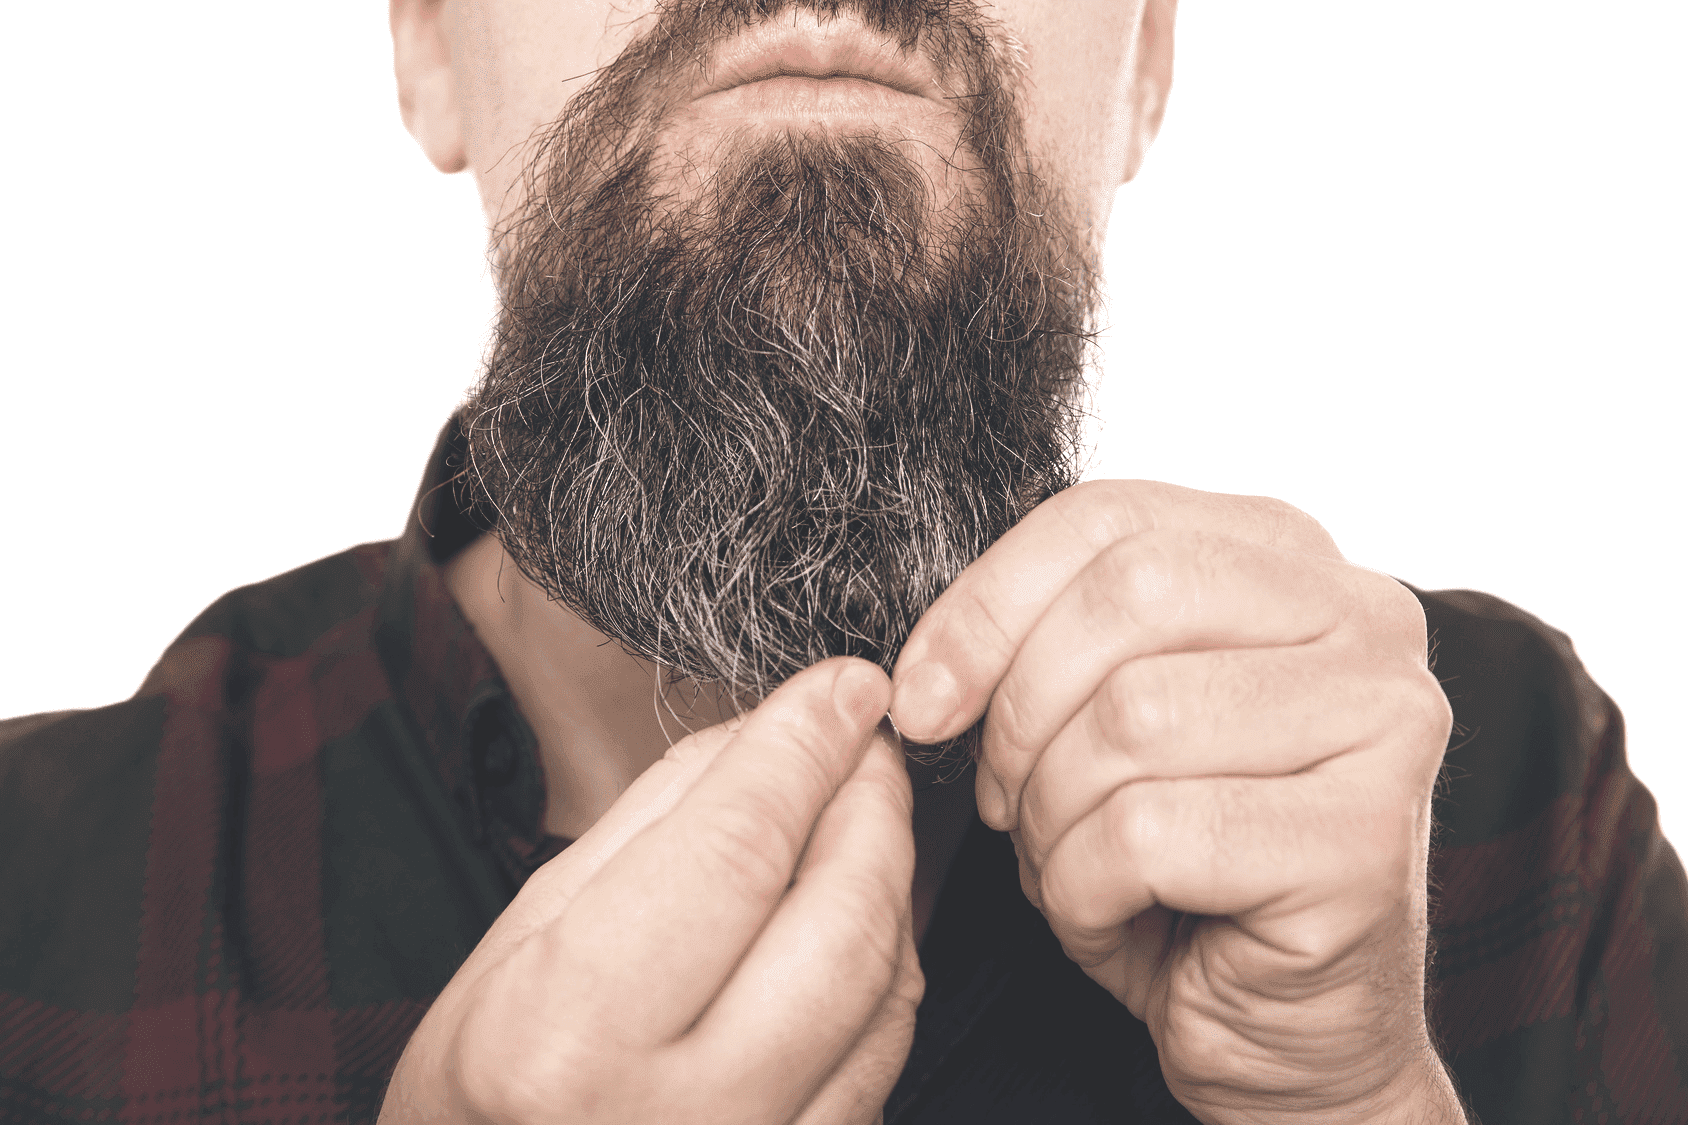 How to use honest amish beard balm | FACIAL HAIRSTYLES